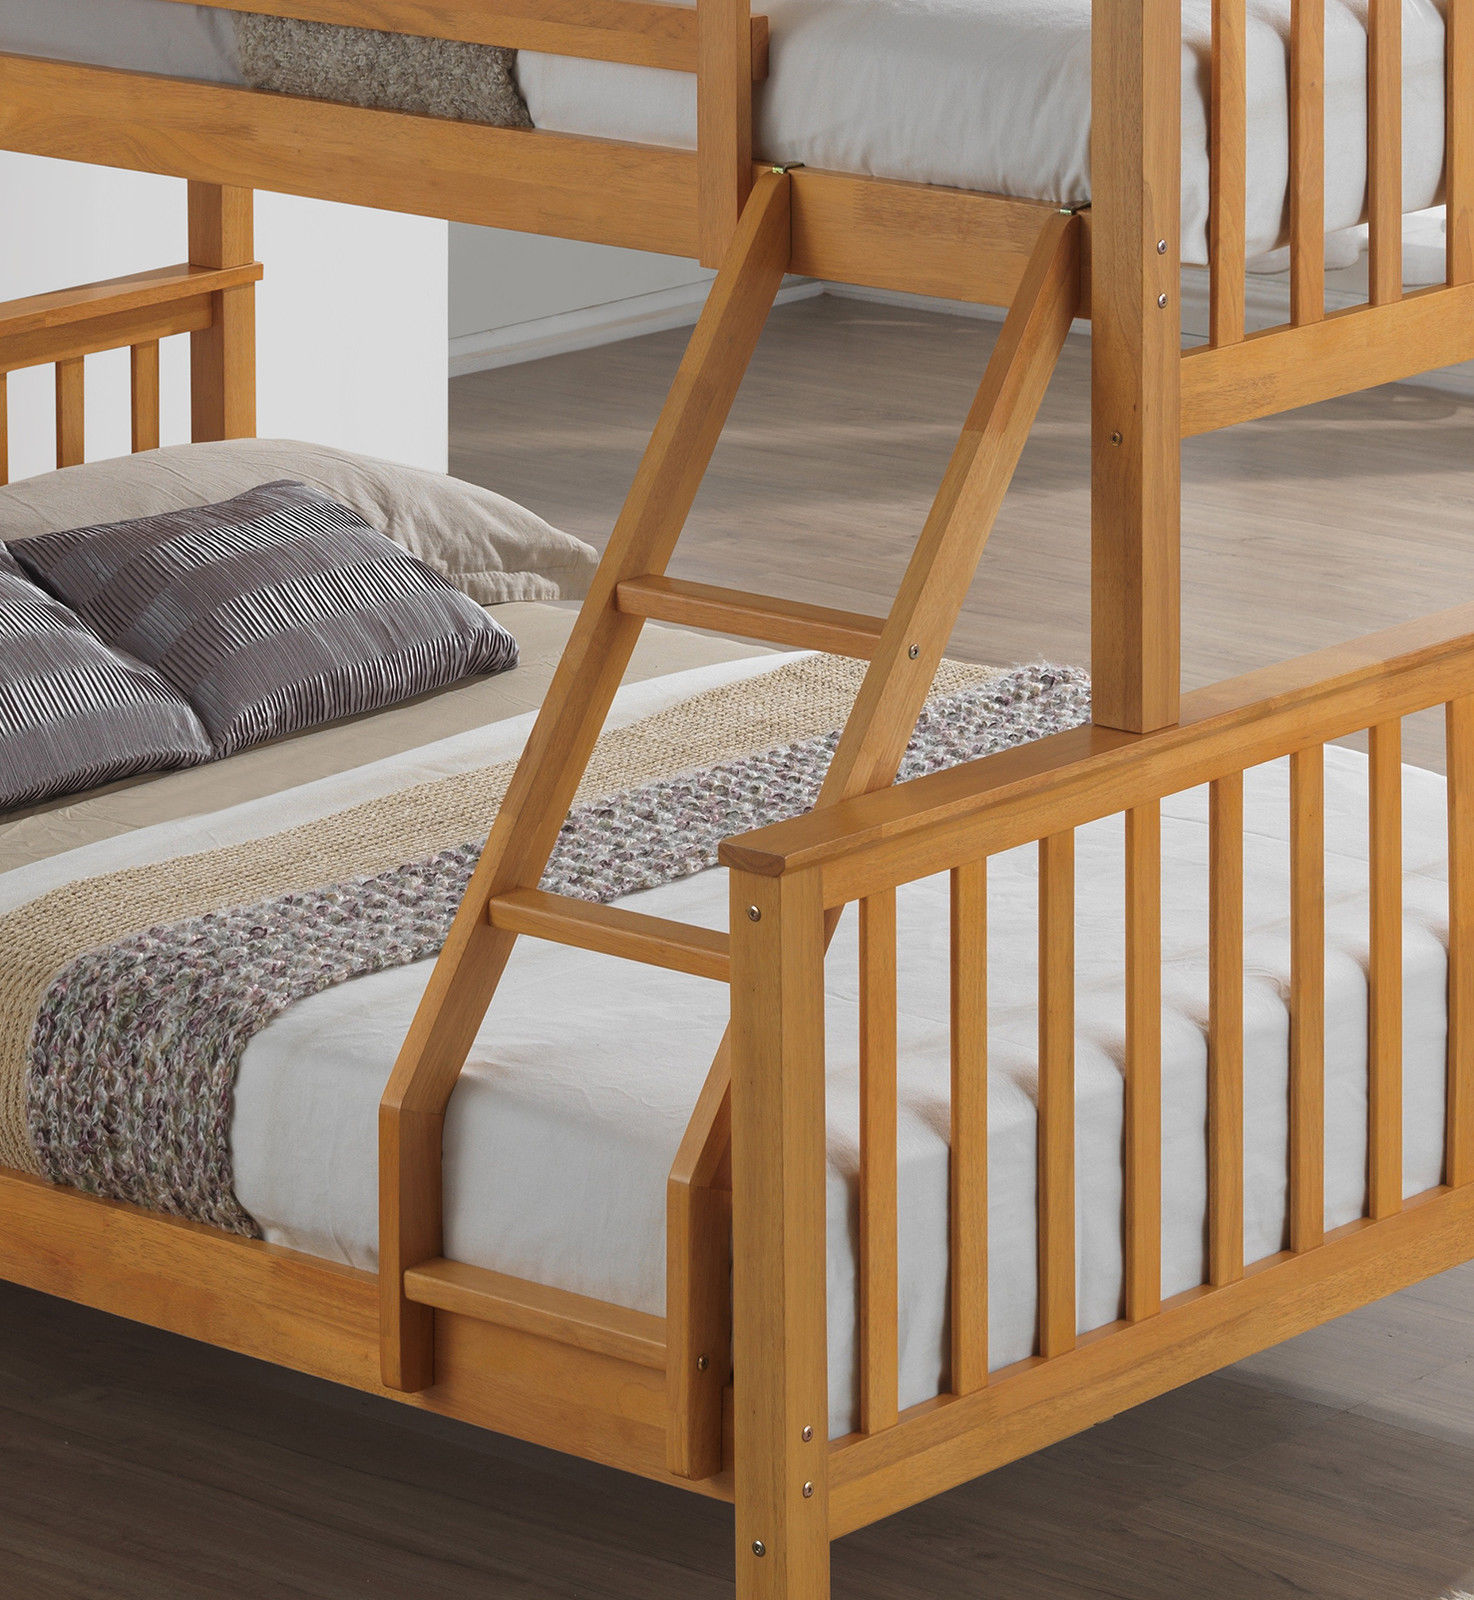 Beech Triple Wooden Bunk Bed Childrens Kids